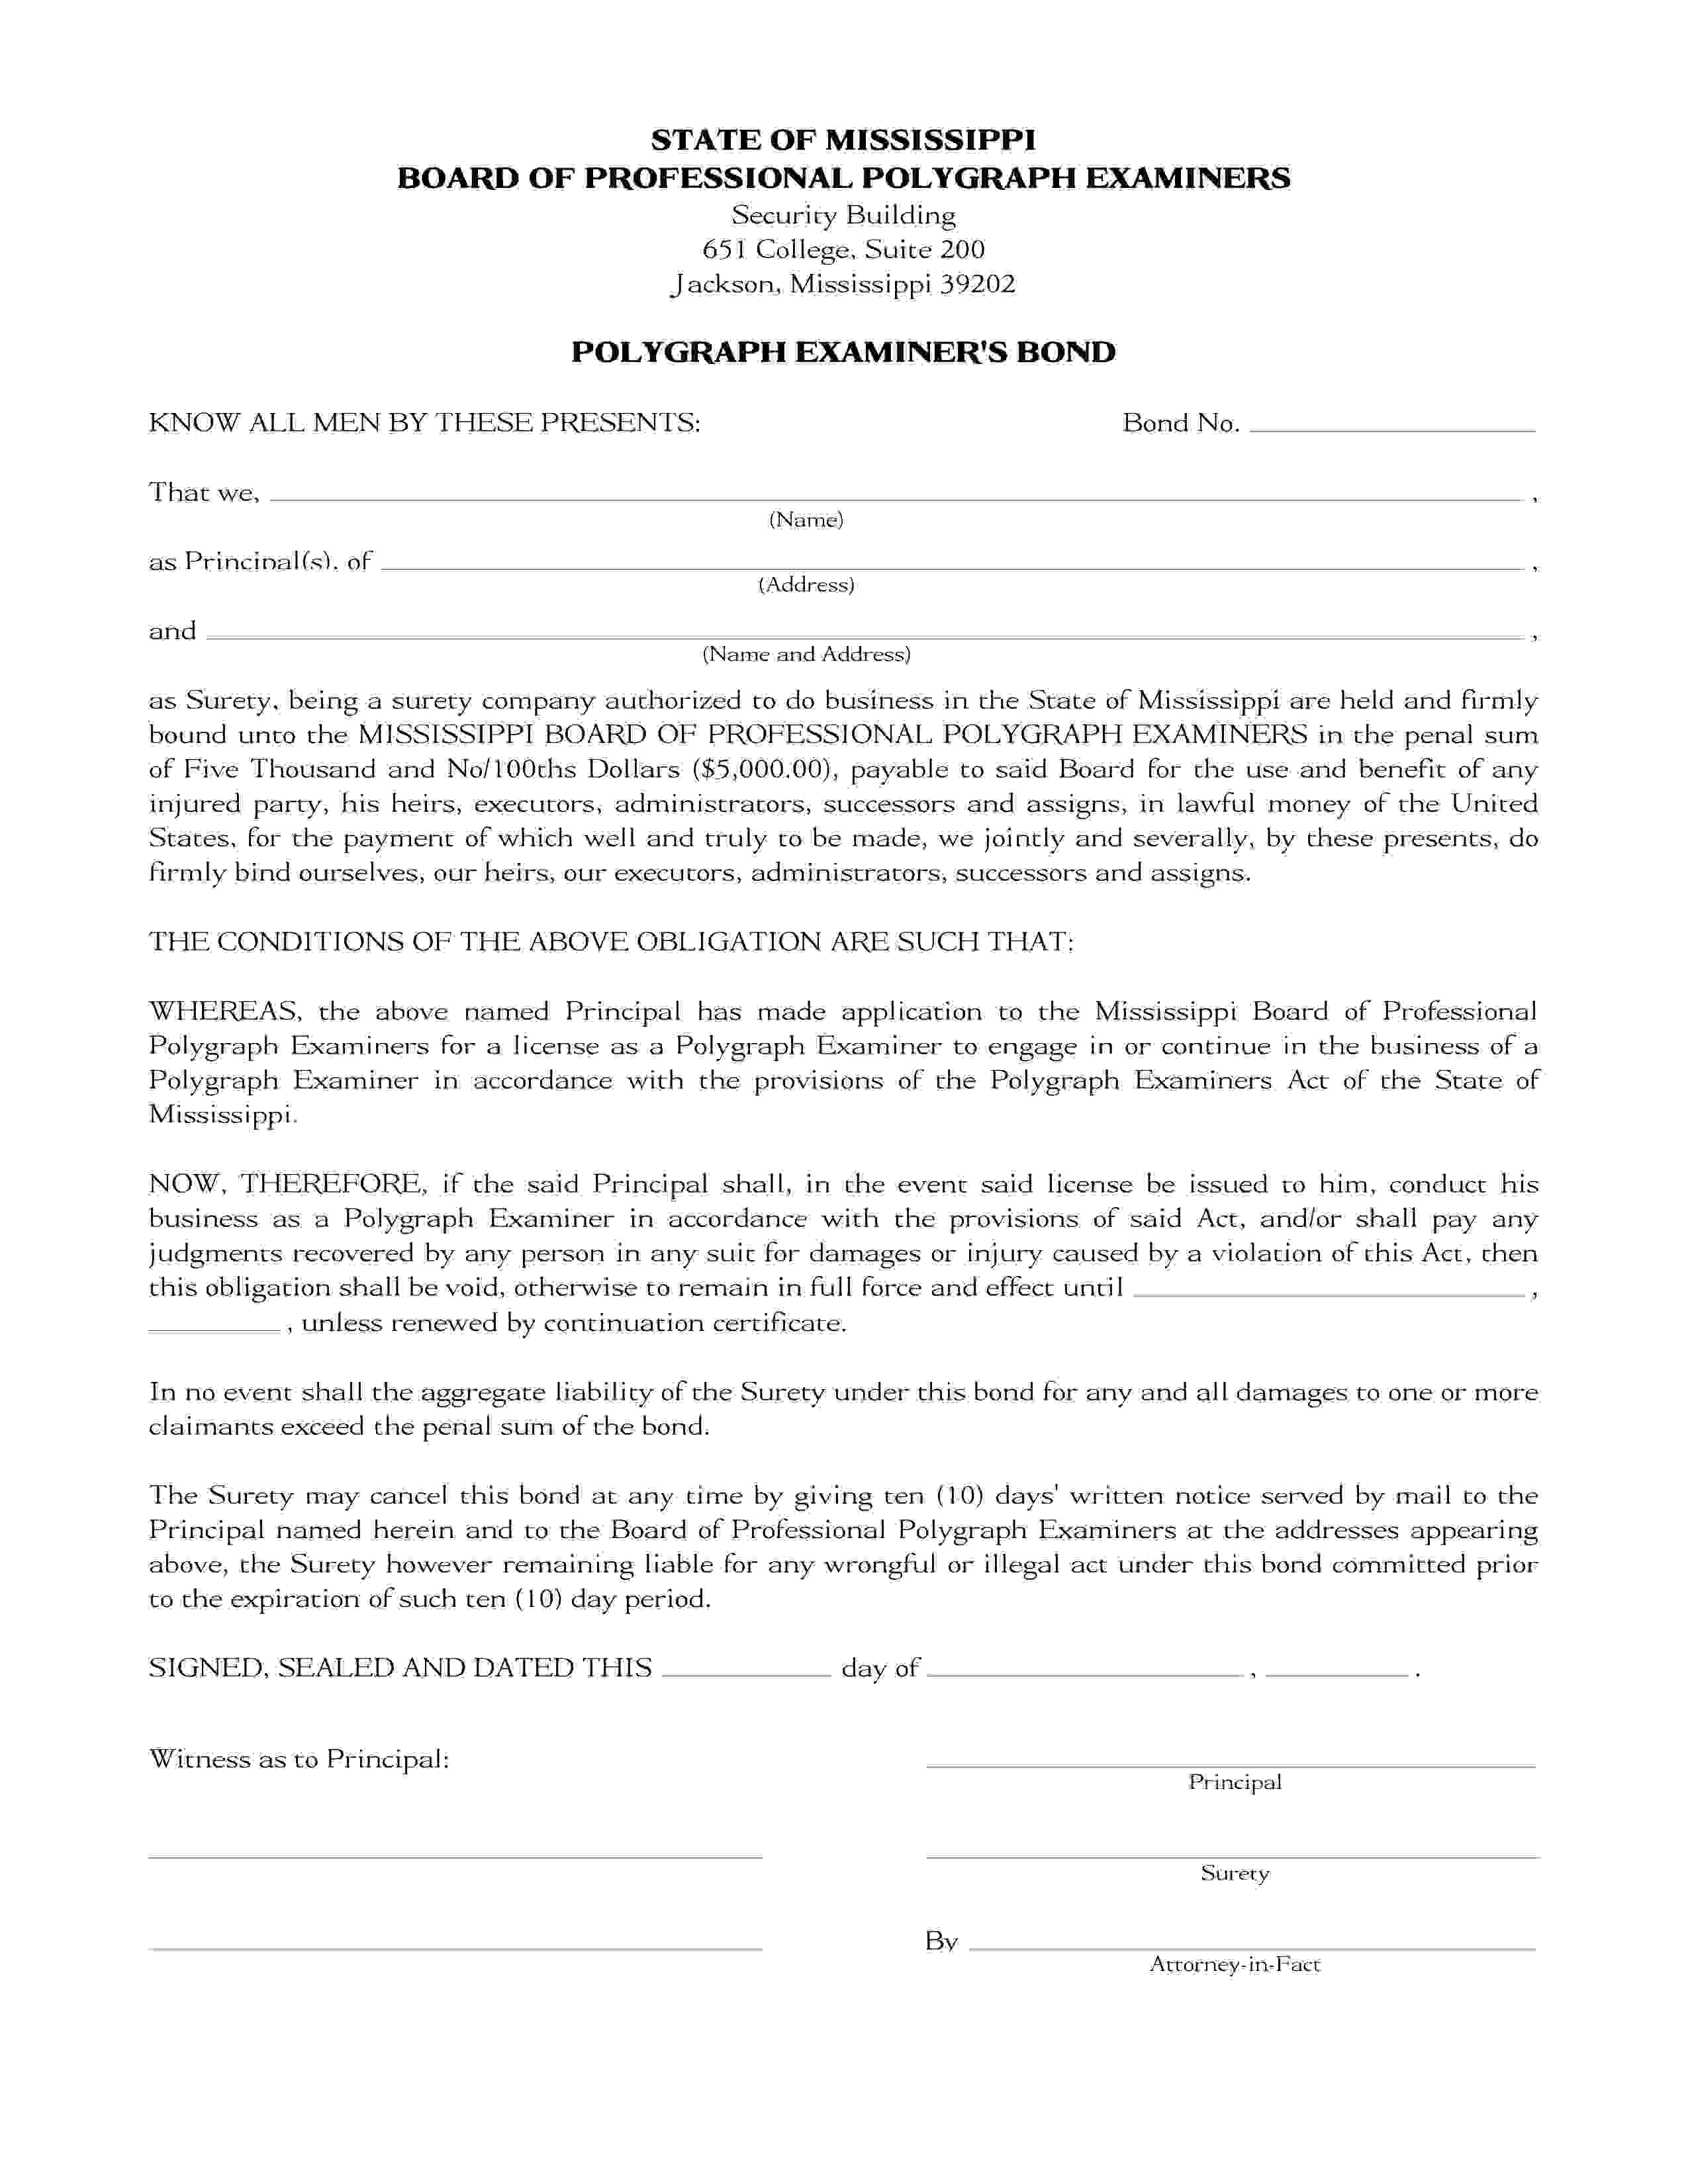 Mississippi Board of Professional Polygraph Examiners Polygraph Examiner Bond sample image